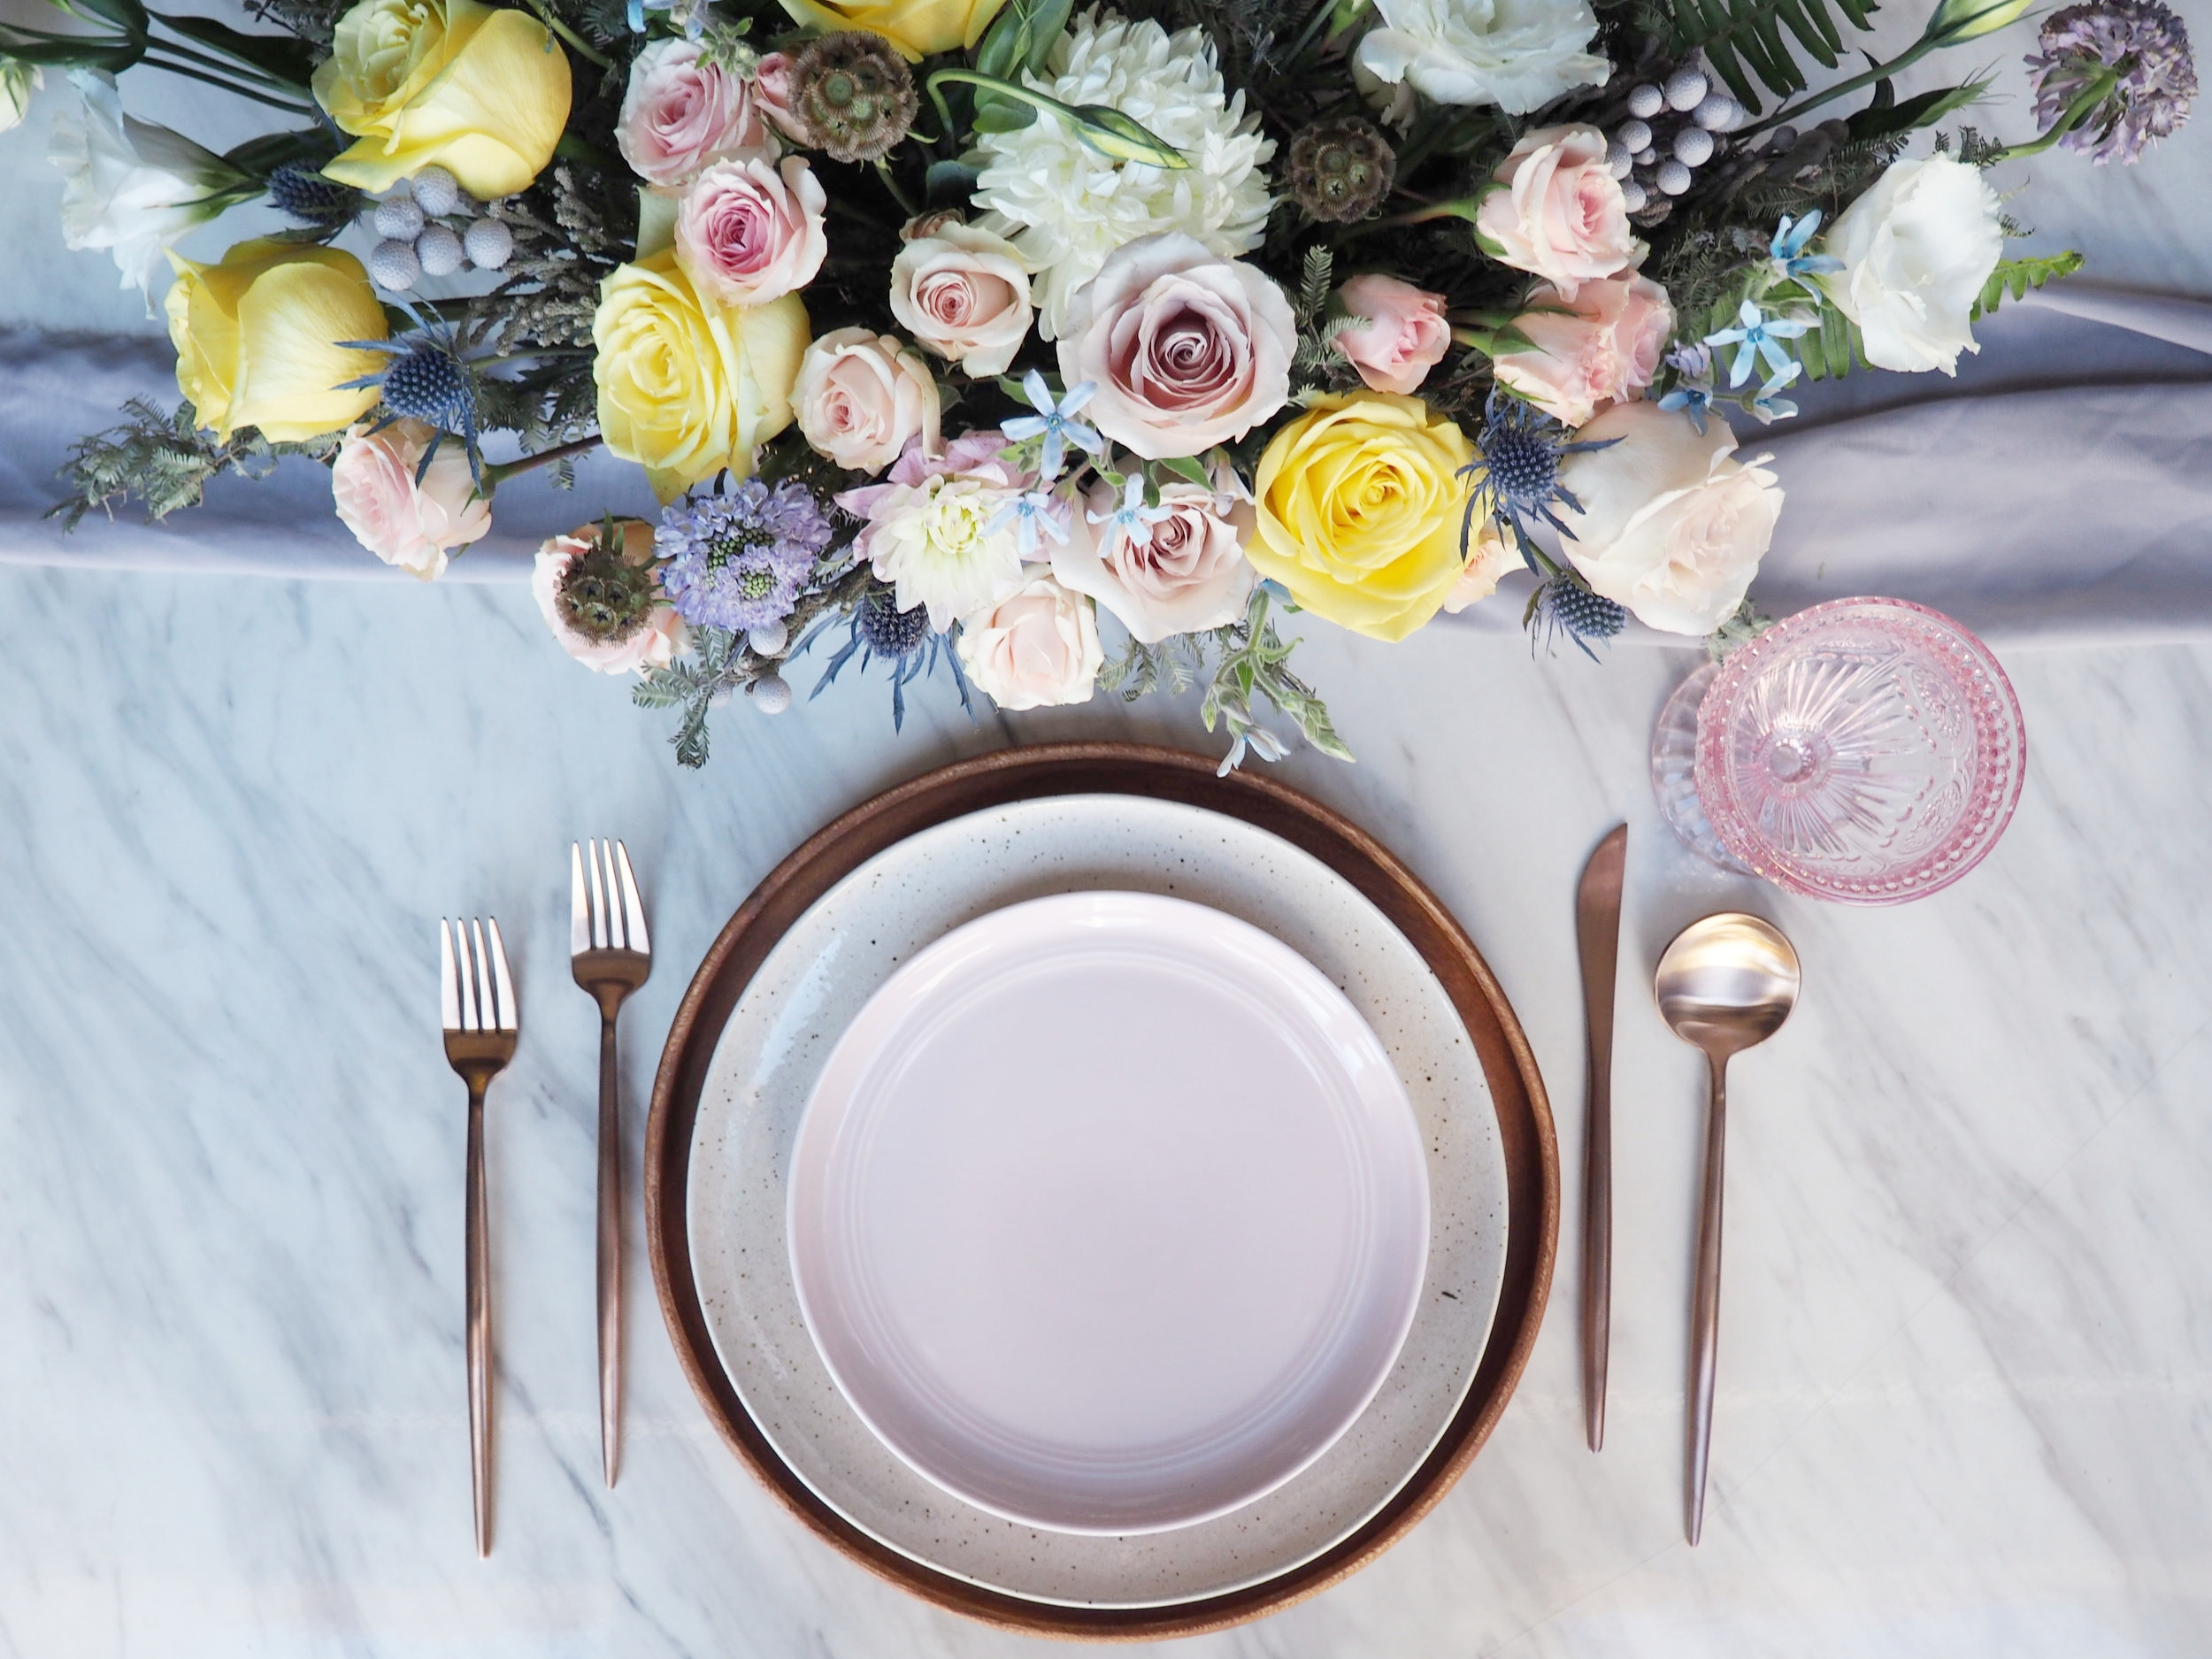 Featuring: Eclectic Pink Goblet, Rose Gold Flatware, Acacia Wood Charger, Speckle Dinner Plate & Blush Salad Plate